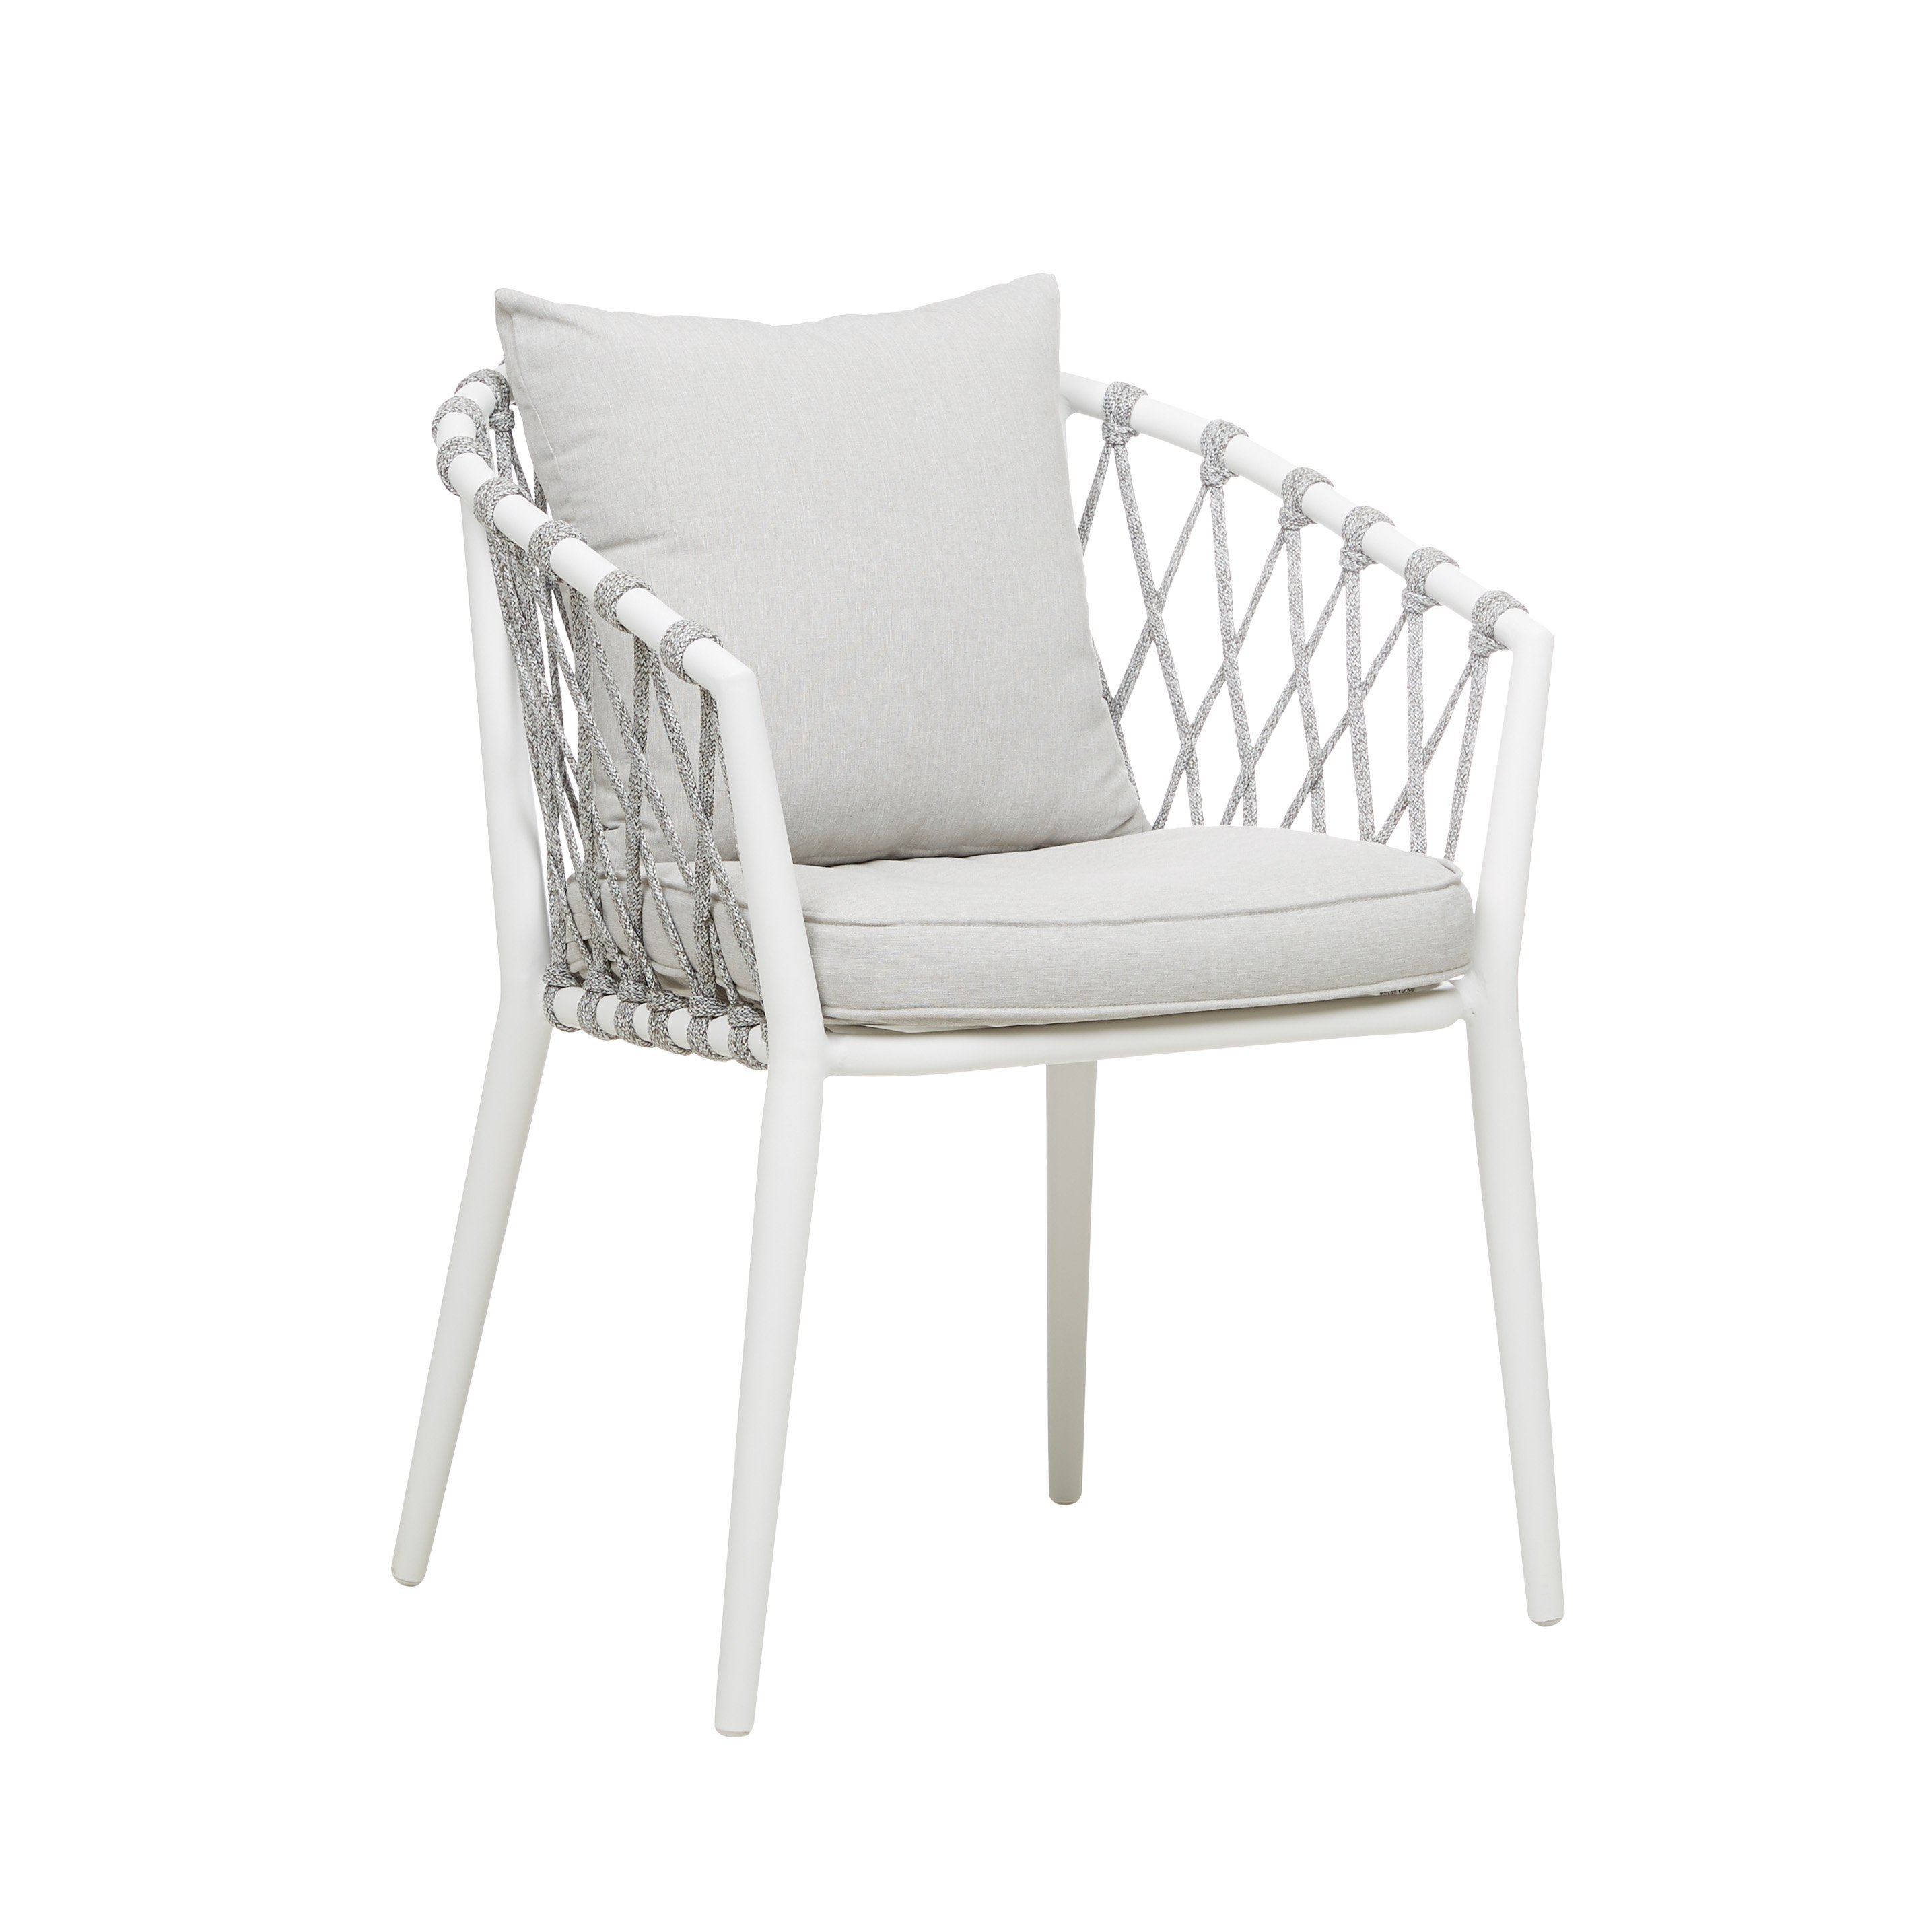 Furniture Hero-Images Dining-Chairs-Benches-and-Stools maui-arm-dining-chair-01